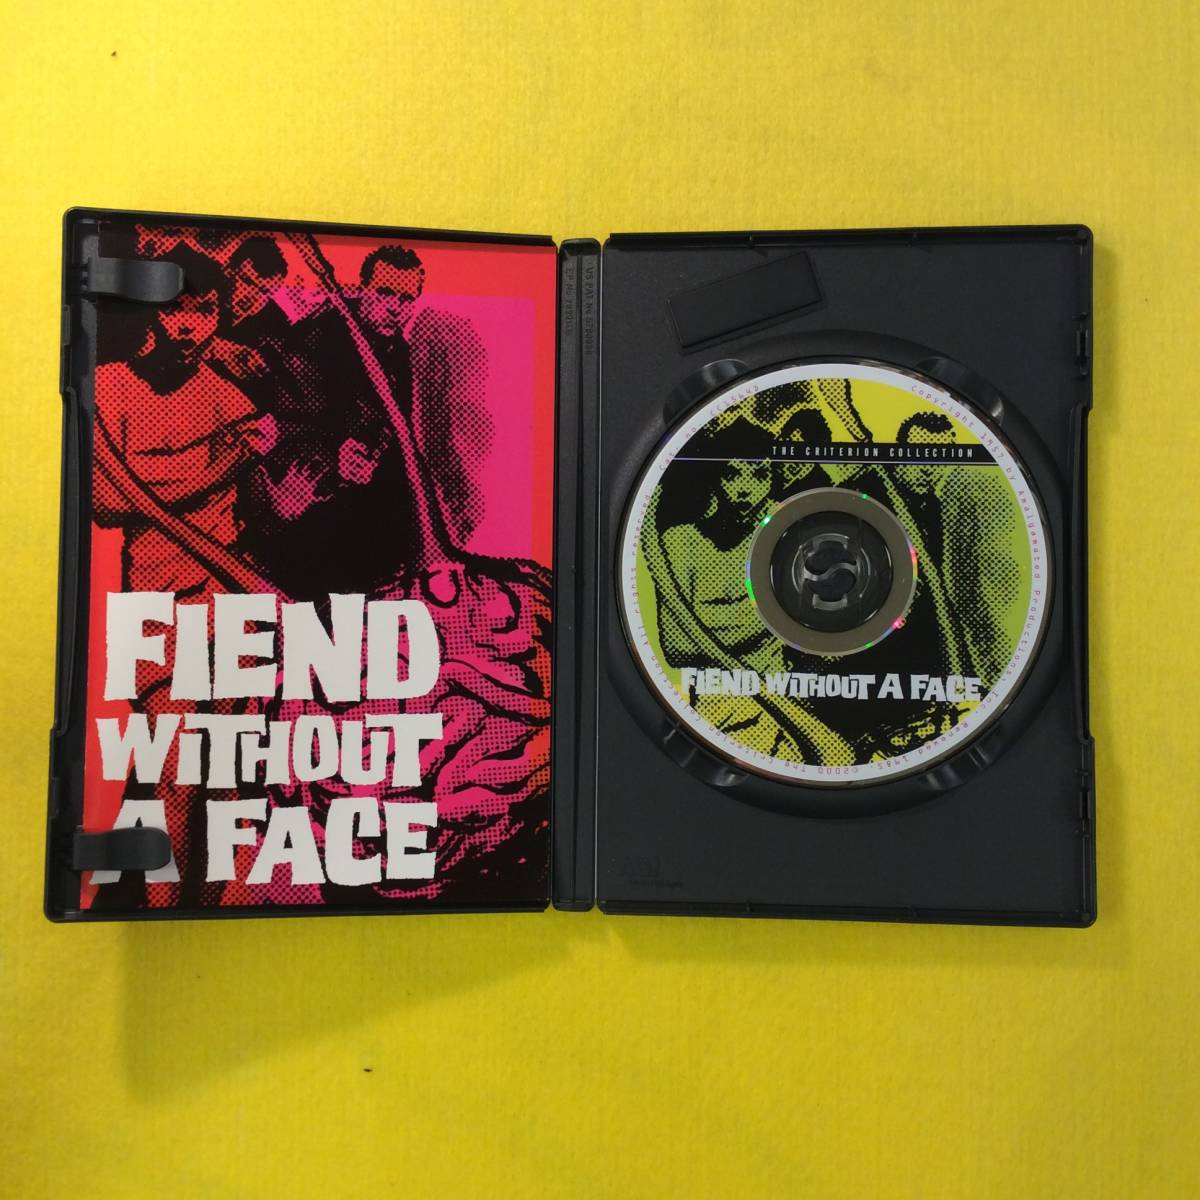 【DVD】FIEND WITHOUT A FACE・輸入盤 リージョン1 SF SciFi 映画_画像4